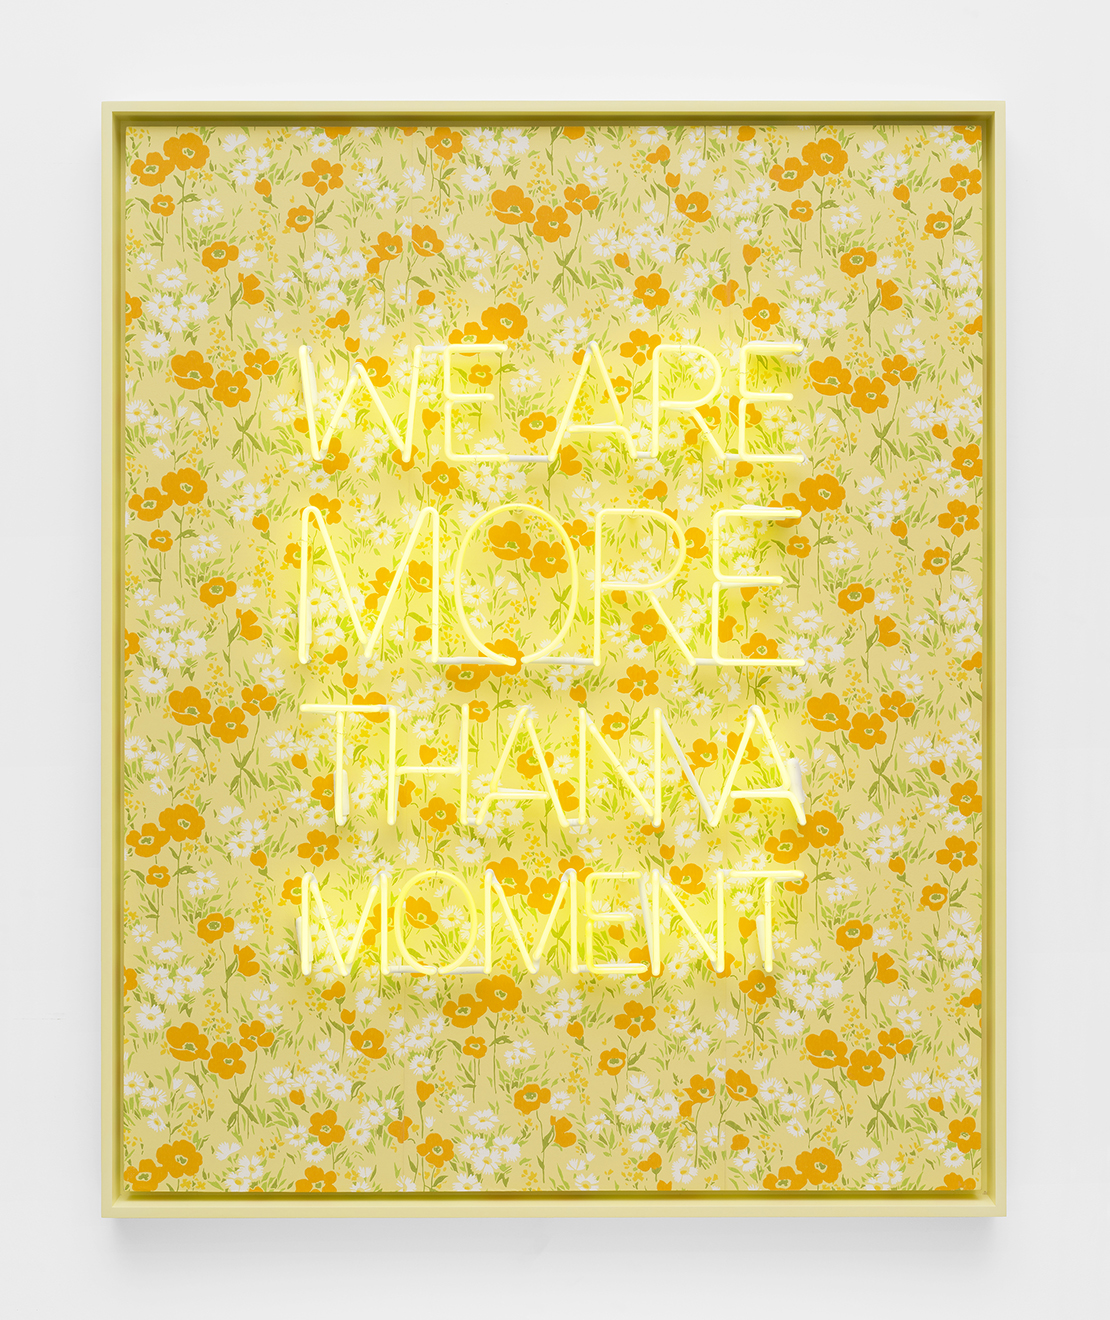 We Are More Than A Moment